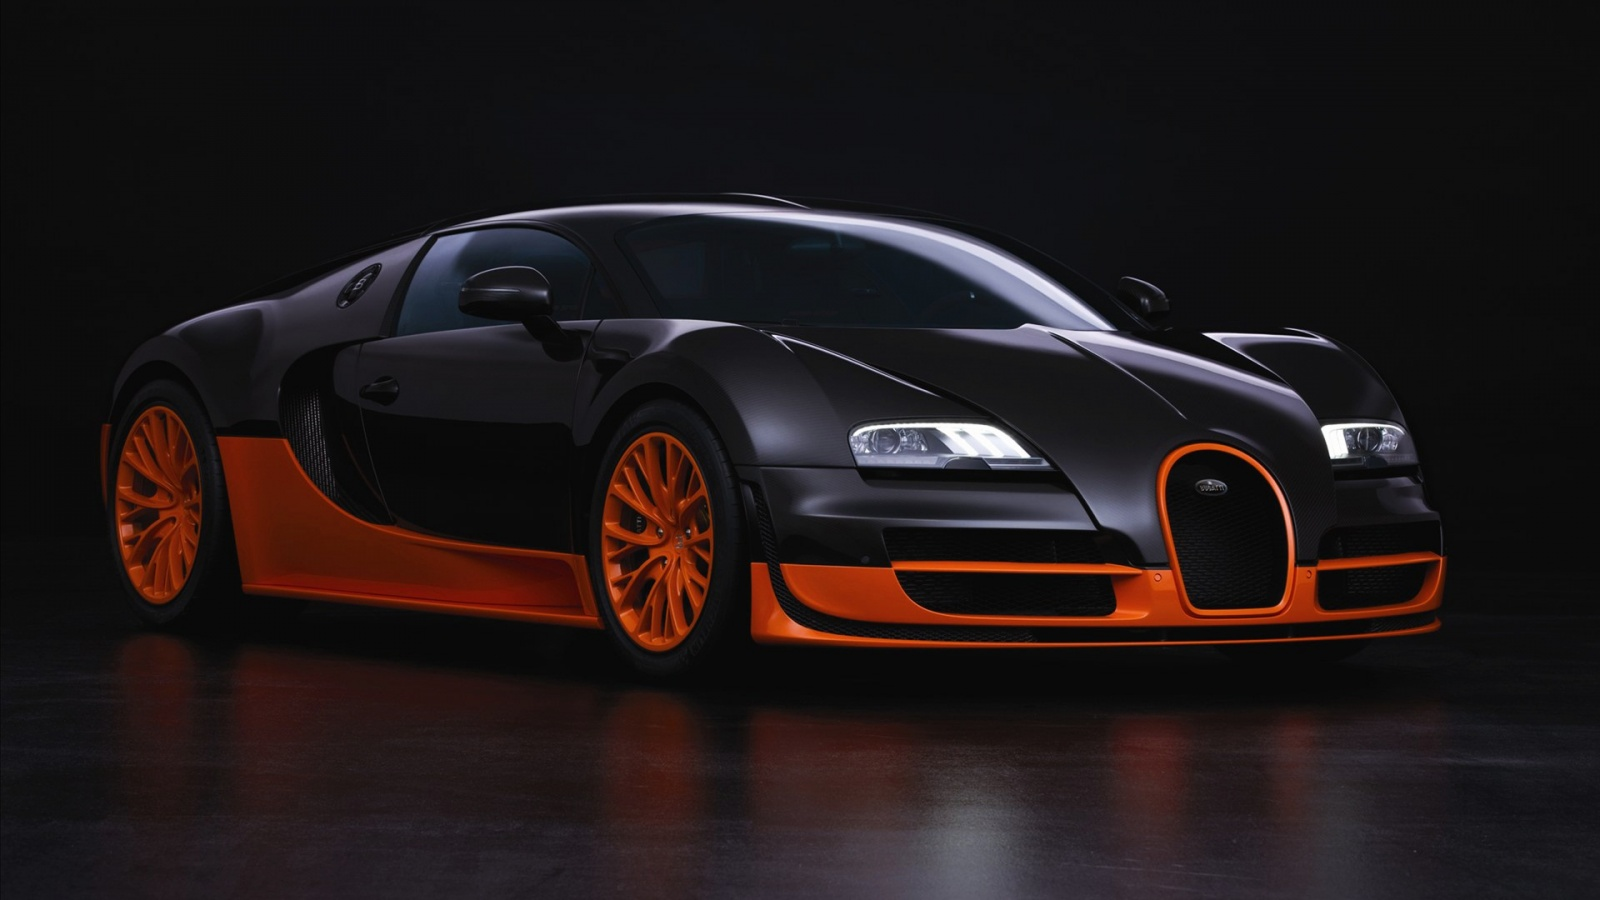 Bugatti Veyron Sports Wallpapers In Jpg Format For Free Download